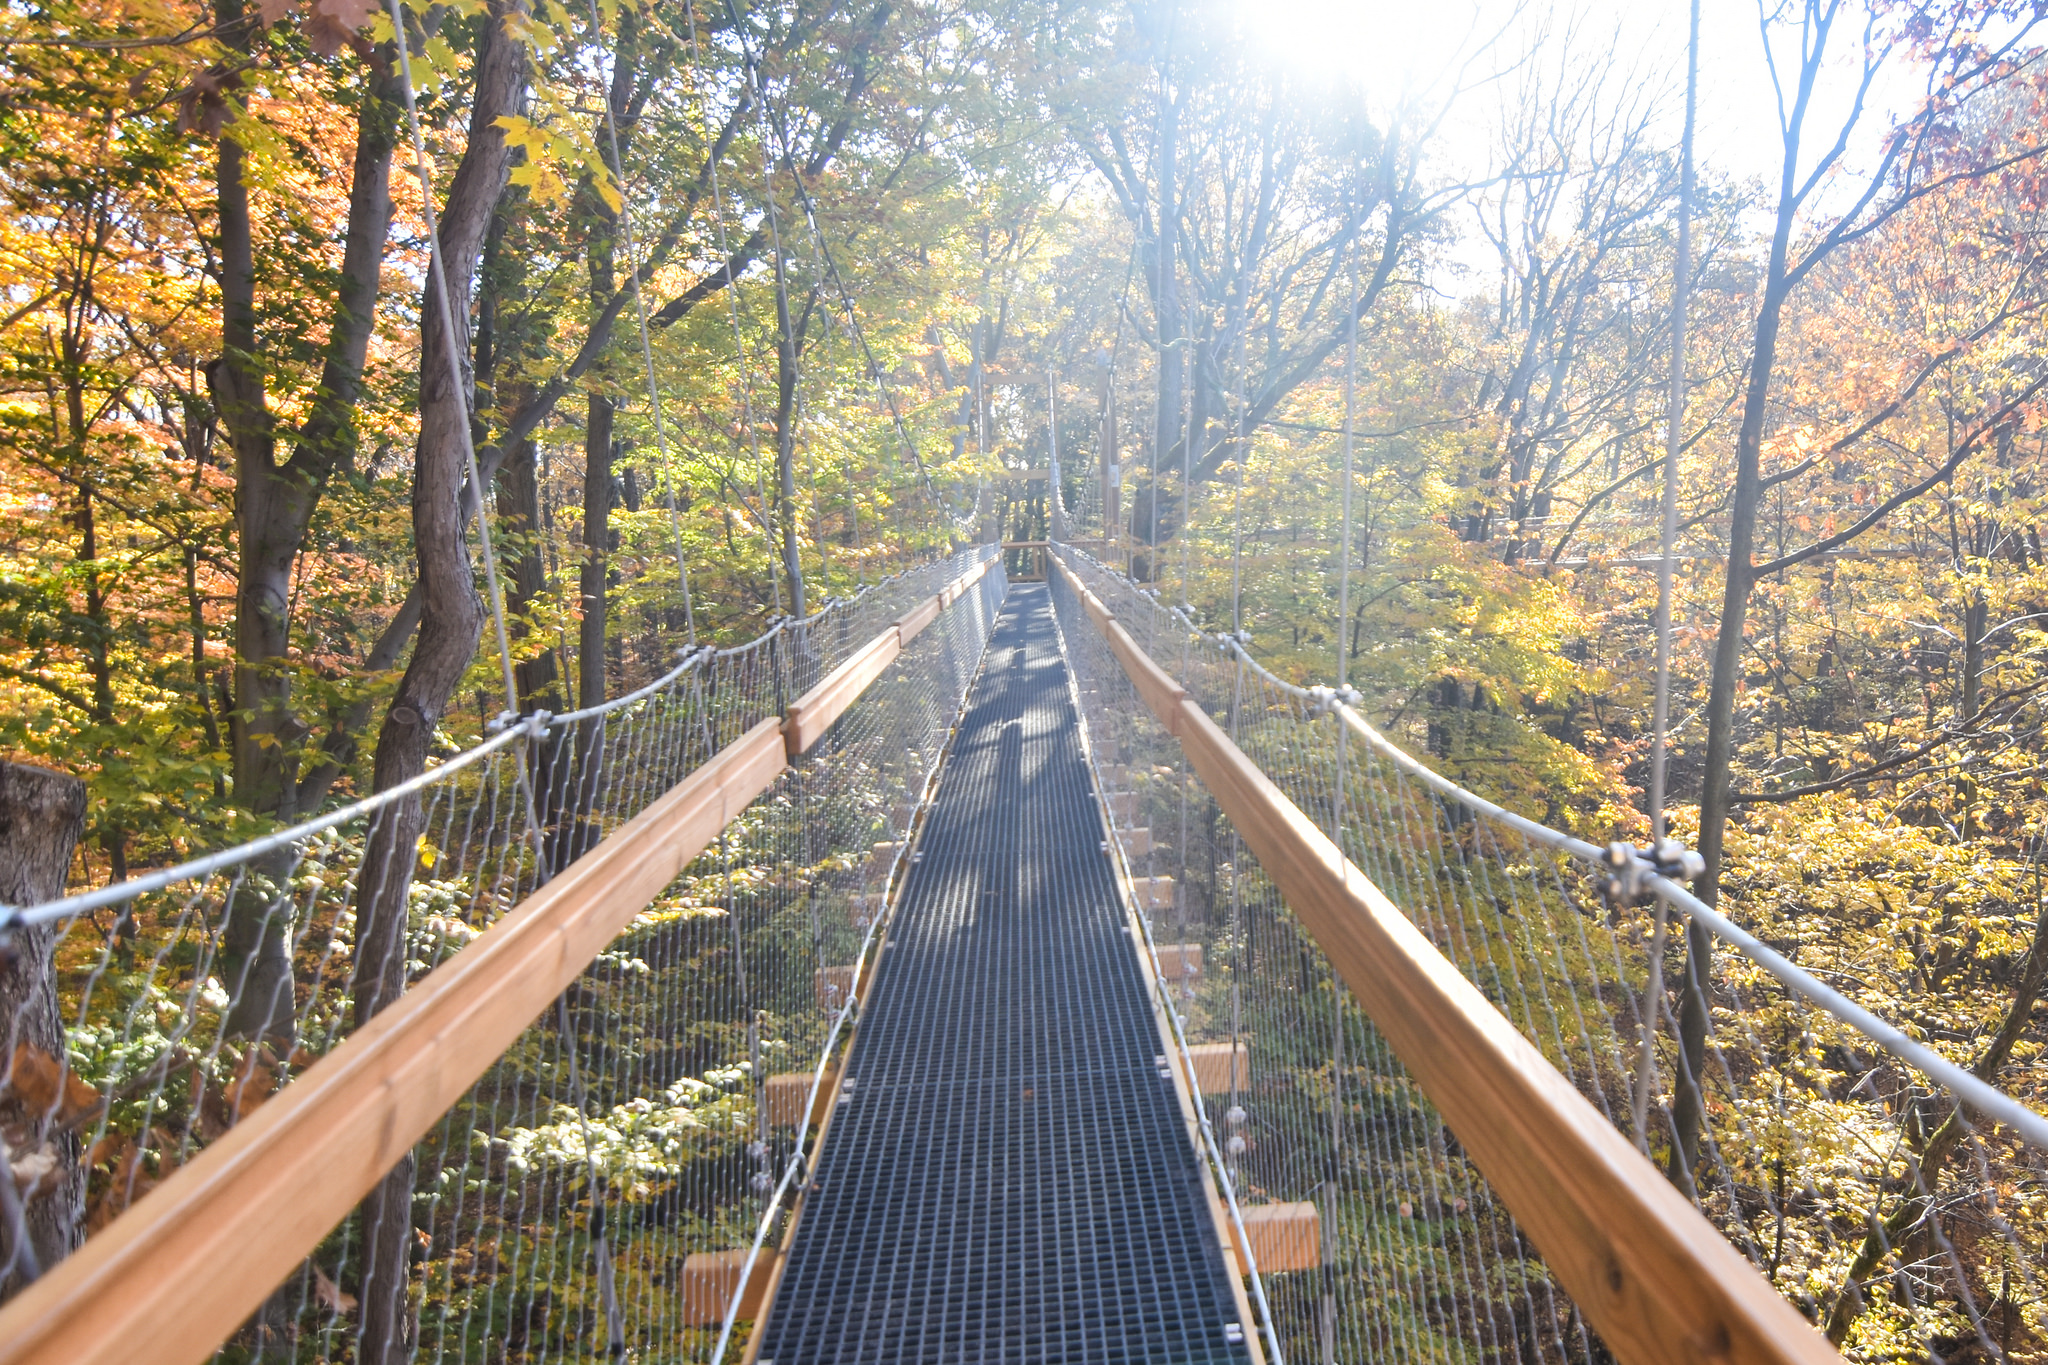 & The Murch Canopy Walk at Holden Arboretum